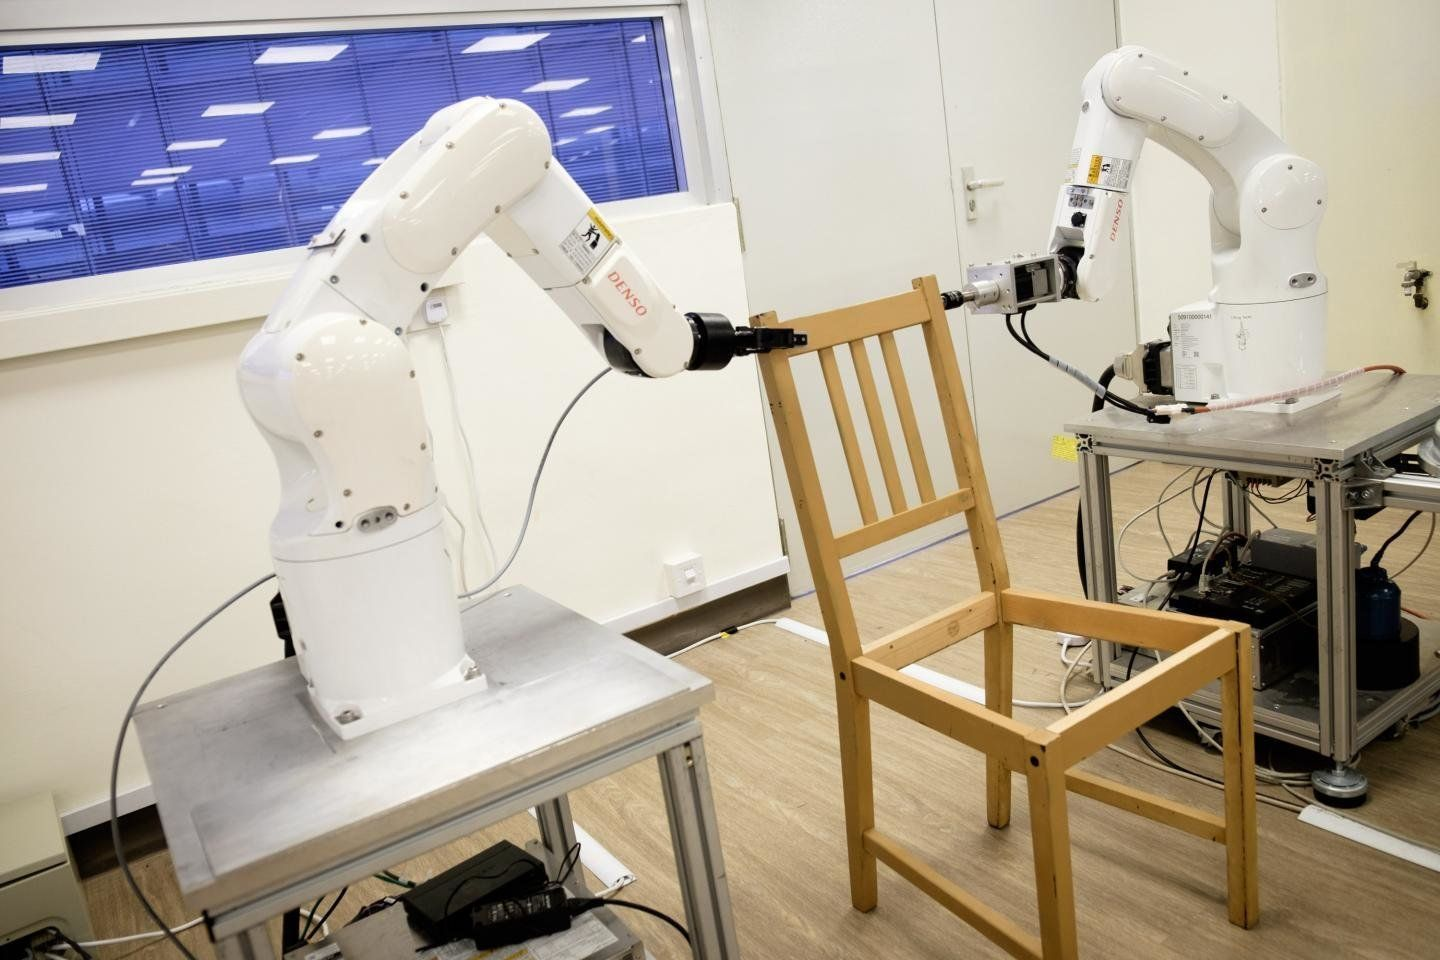 This Robot Can Build An Ikea Chair Without Any Human